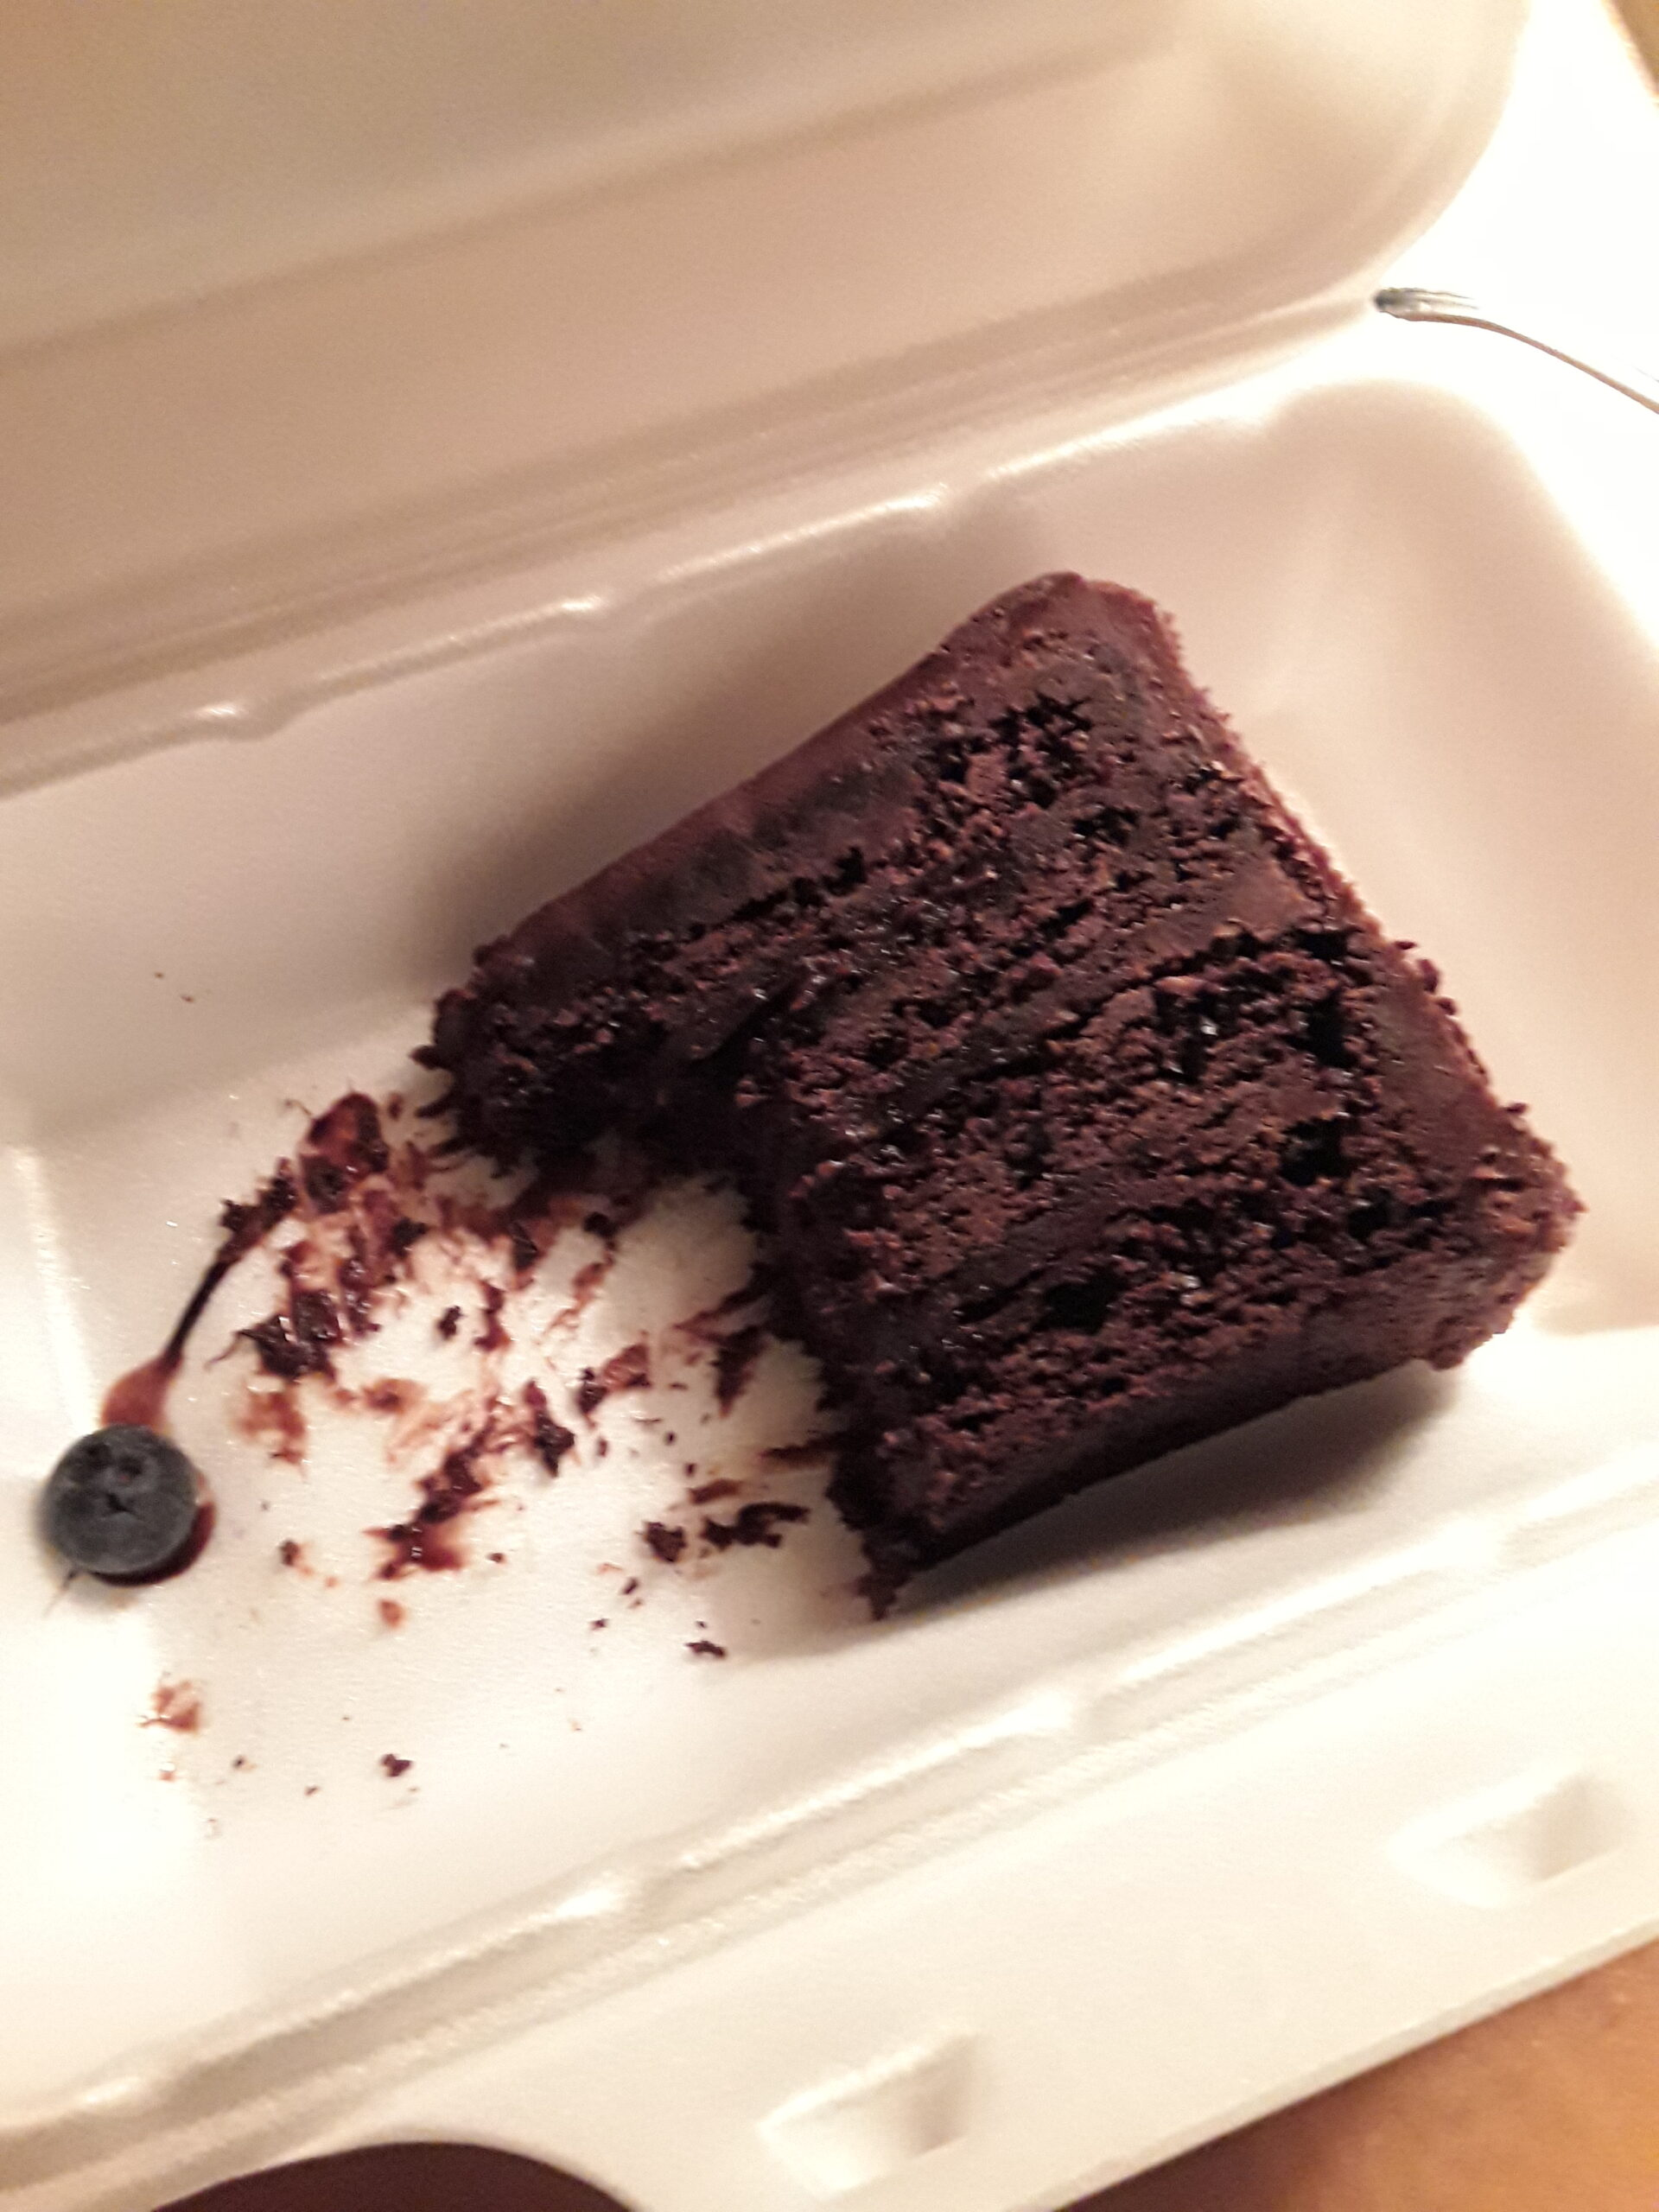 Slice of chocolate fudge cake in styrofoam container